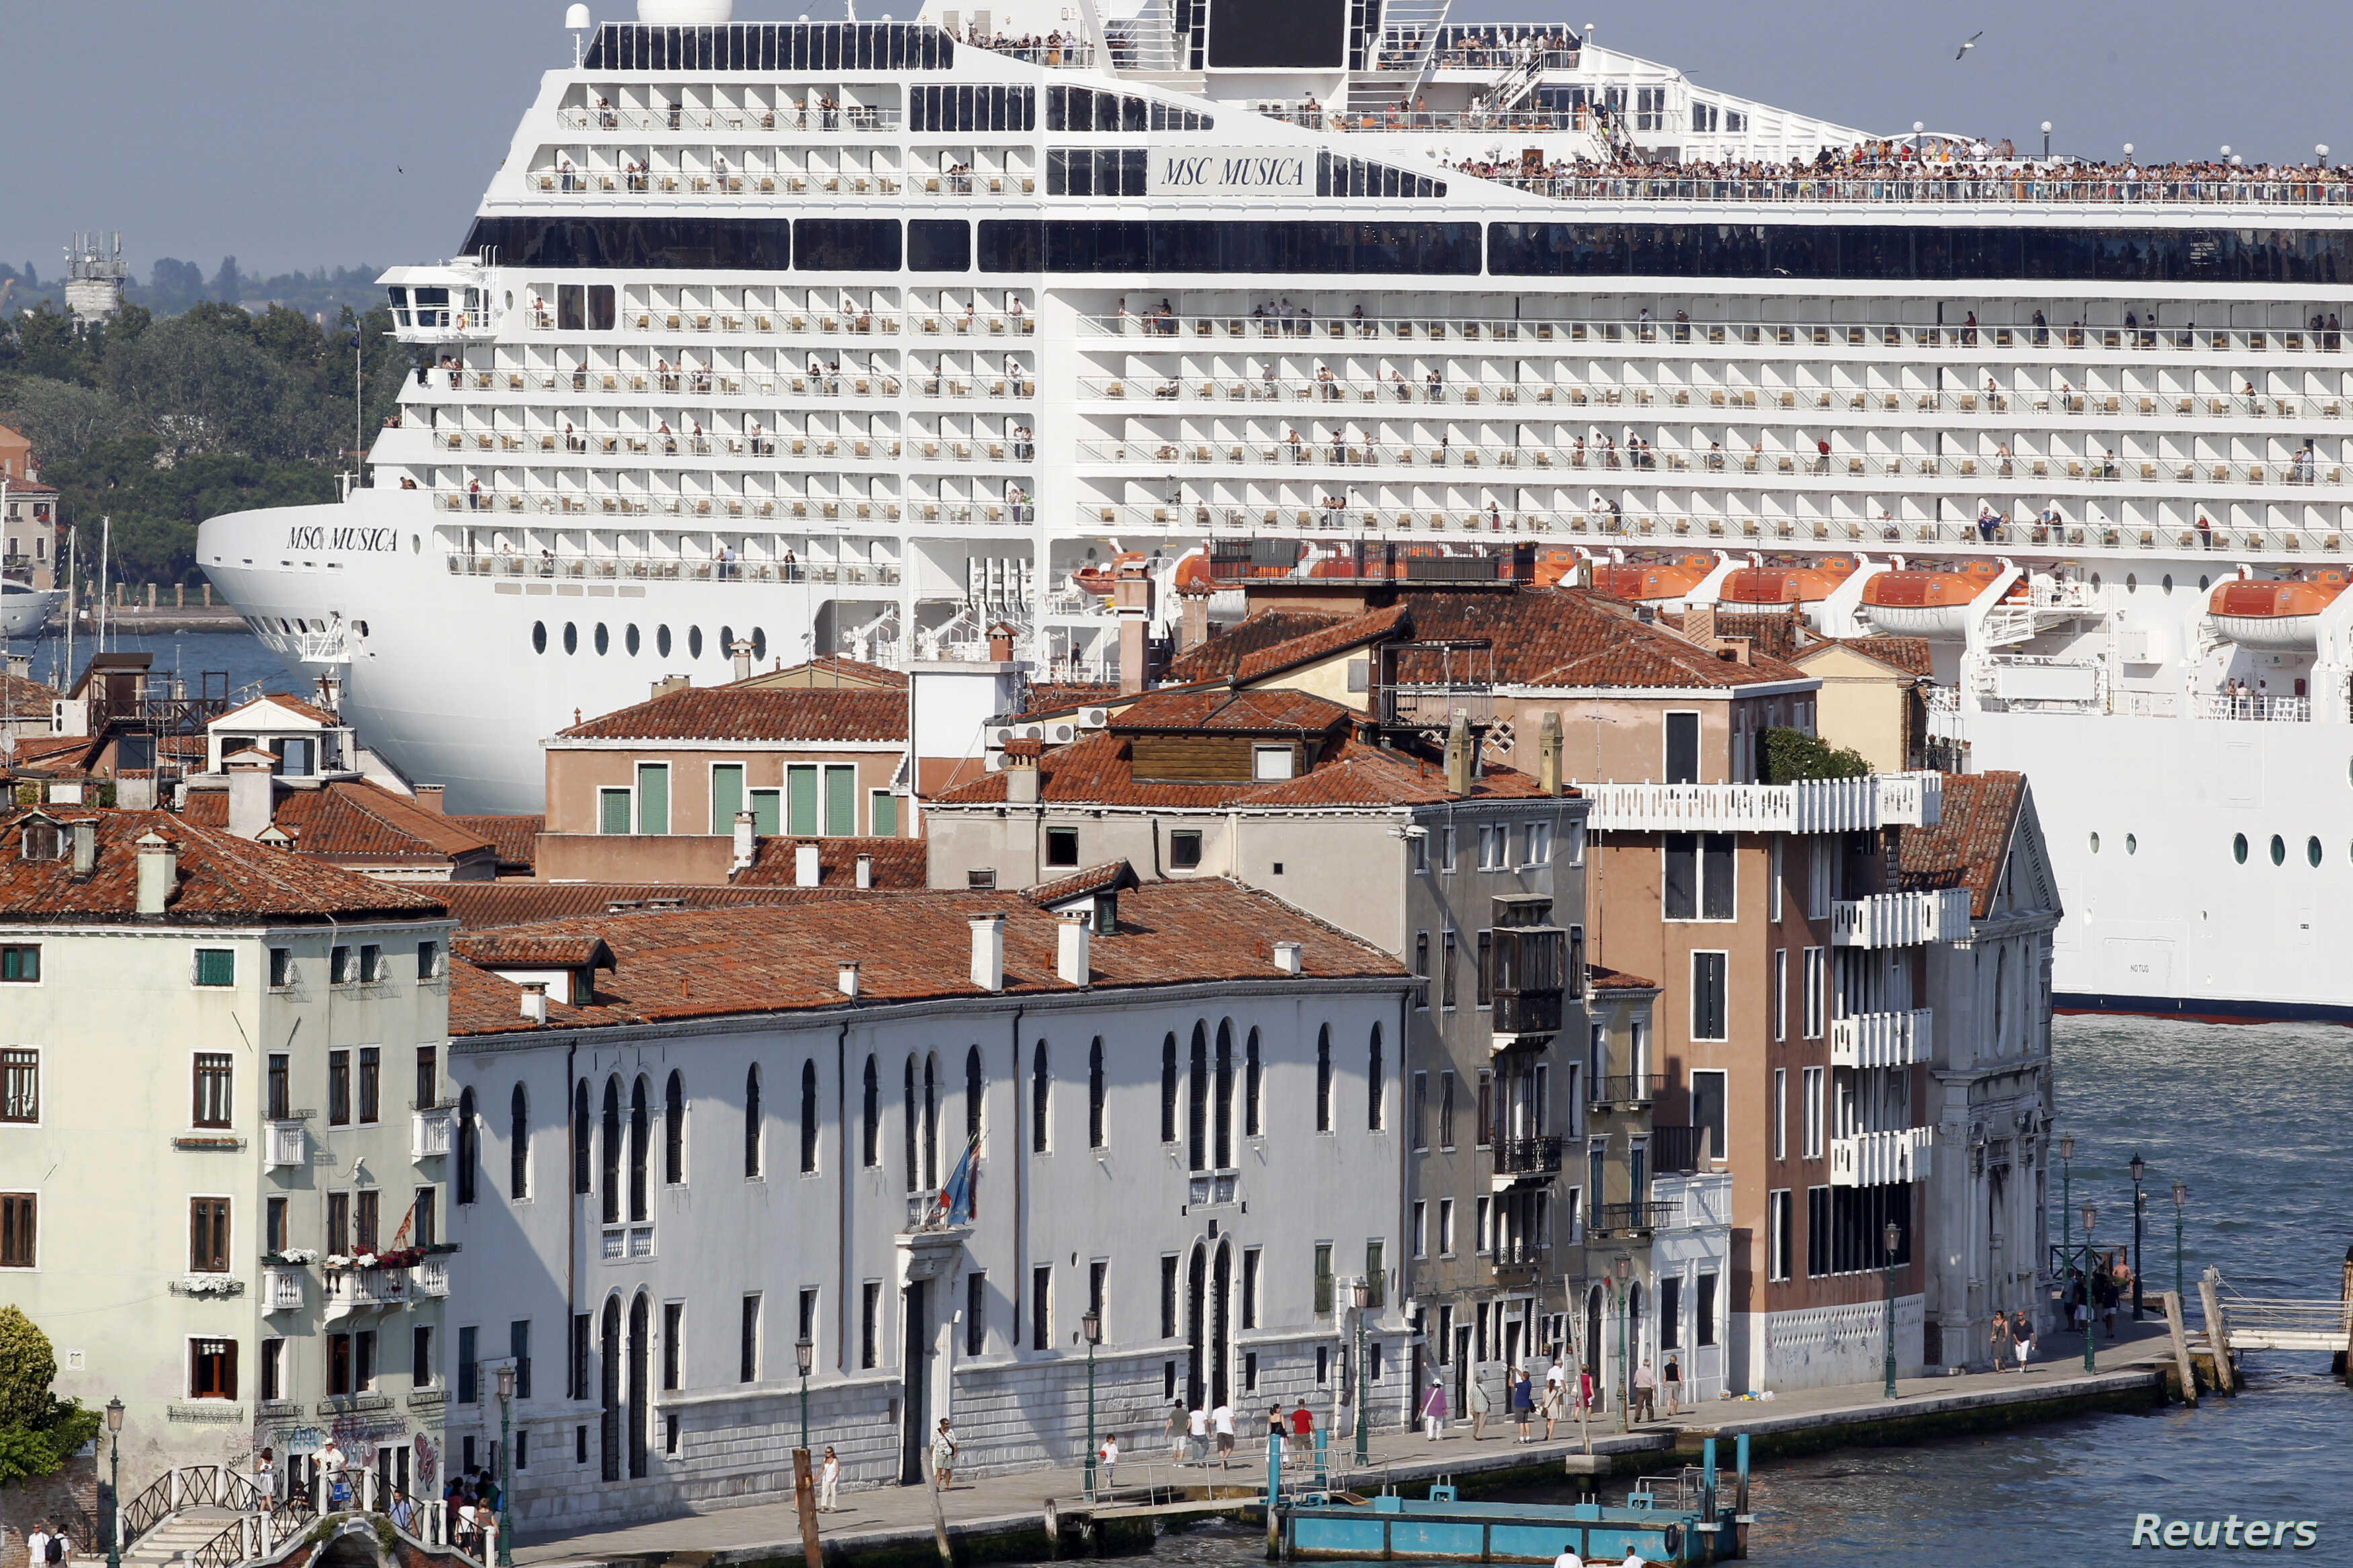 (File) The MSC Musica cruise ship in the Venice lagoon. Italy will now limit or shut down cruise ship traffic in parts of the Venice lagoon and near Saint Mark's Square.